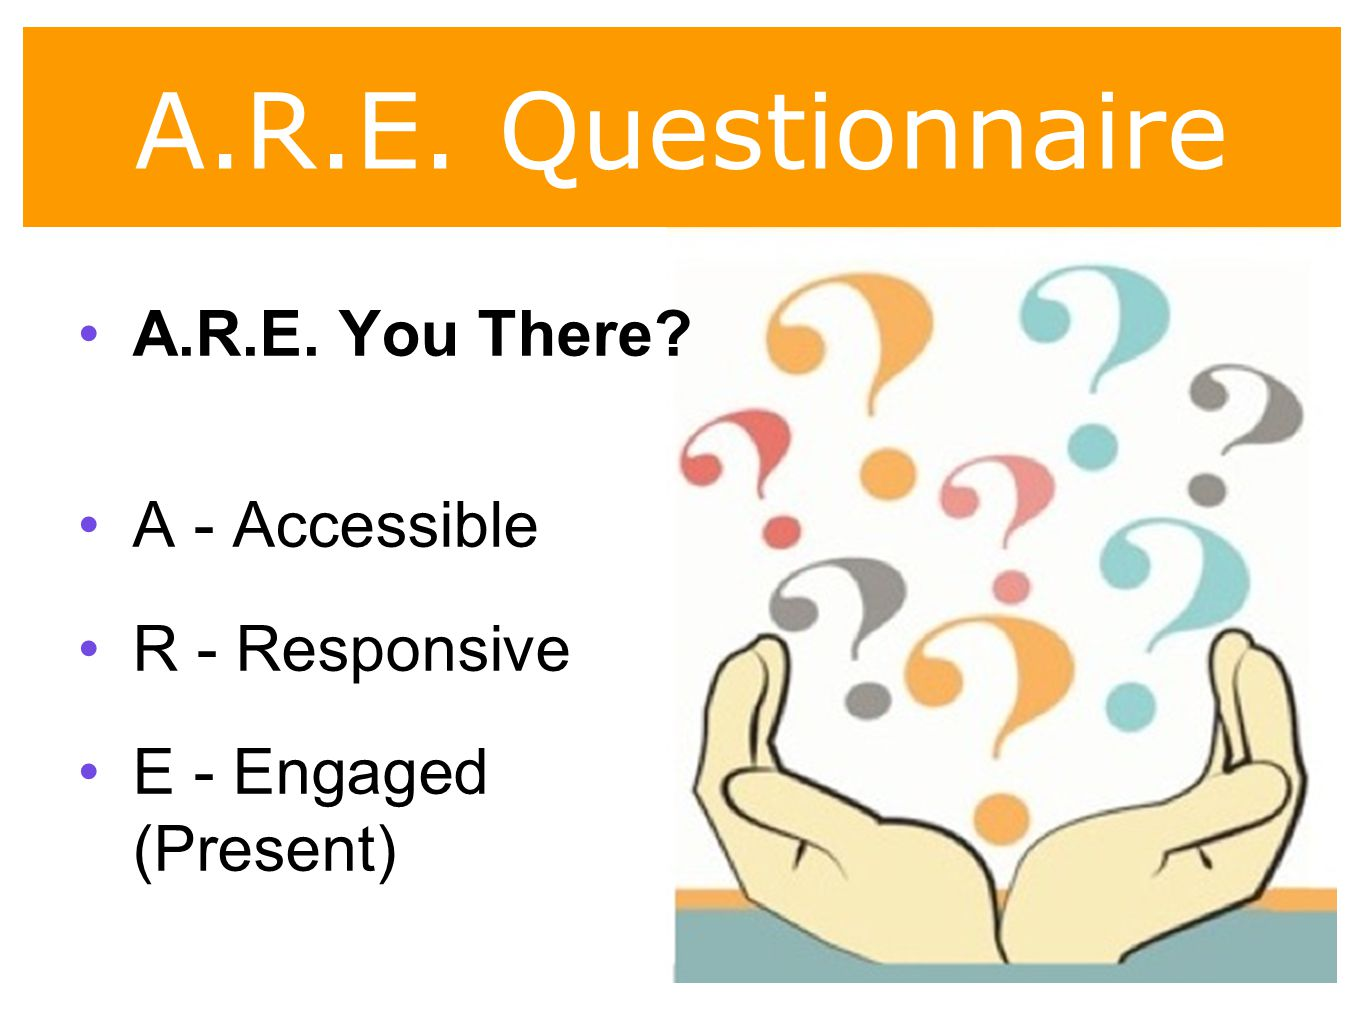 A.R.E. Questionnaire A.R.E. You There A - Accessible R - Responsive